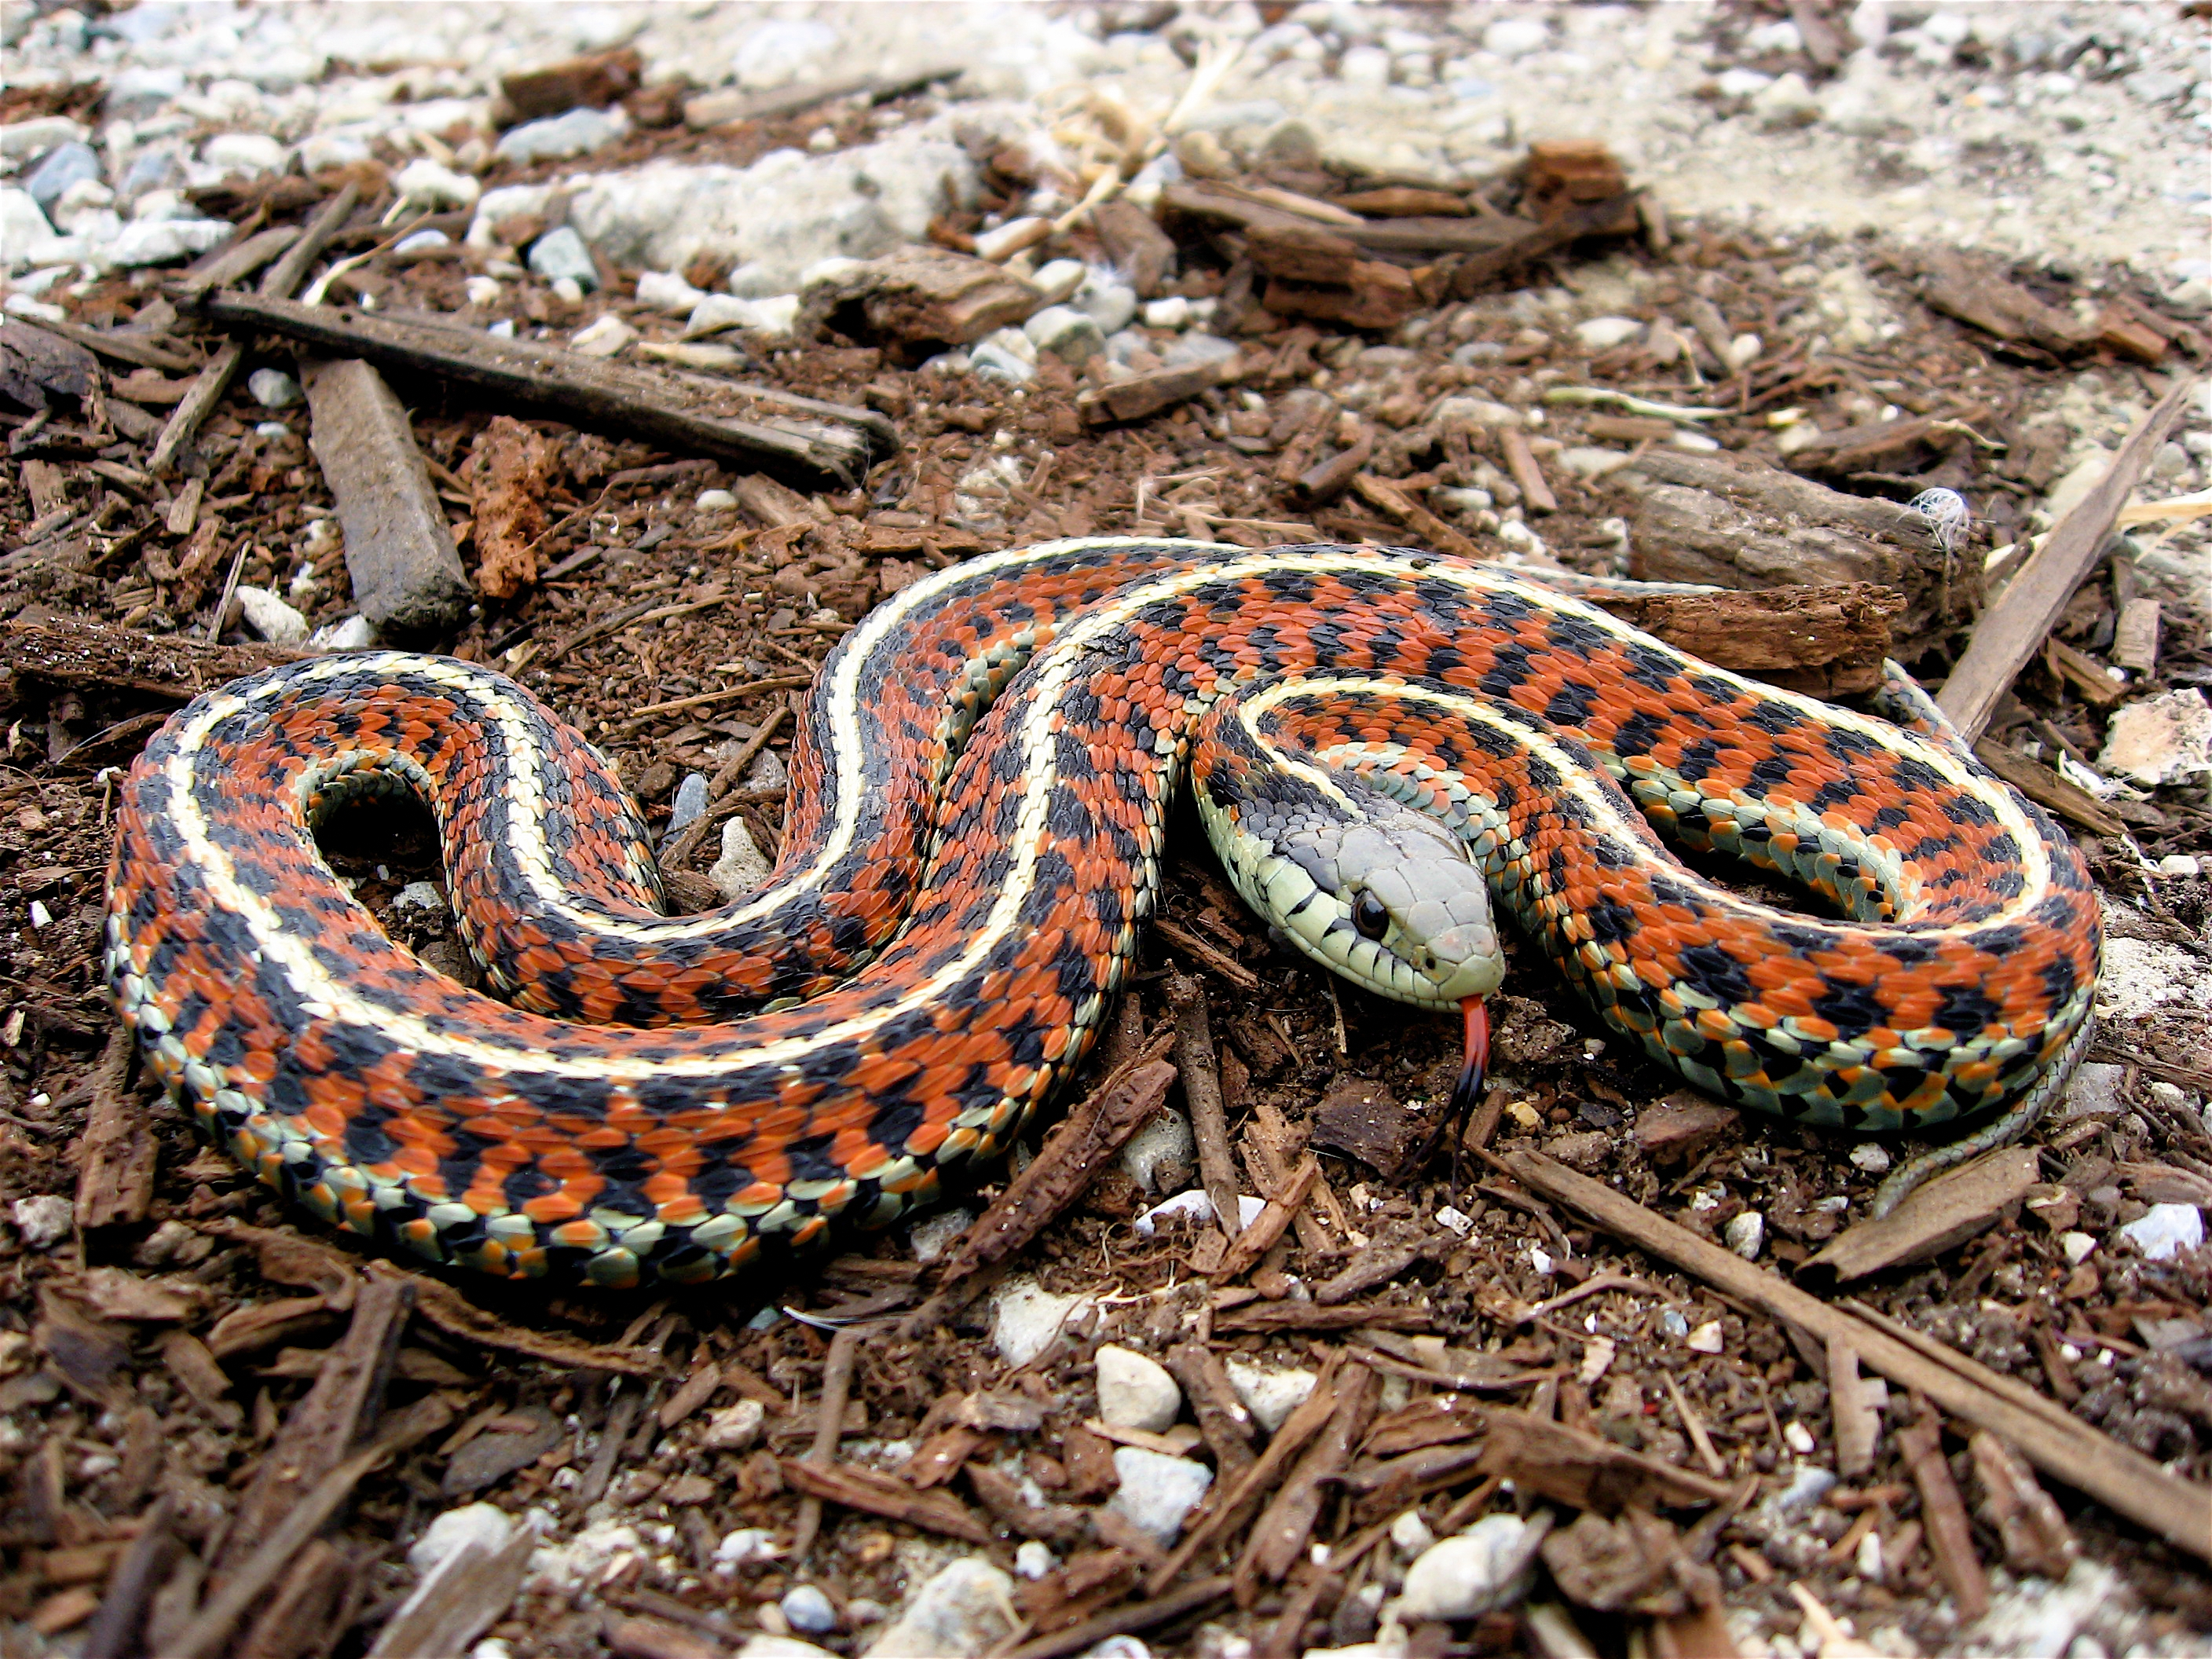 The Garter snake has been studied for sexual selection